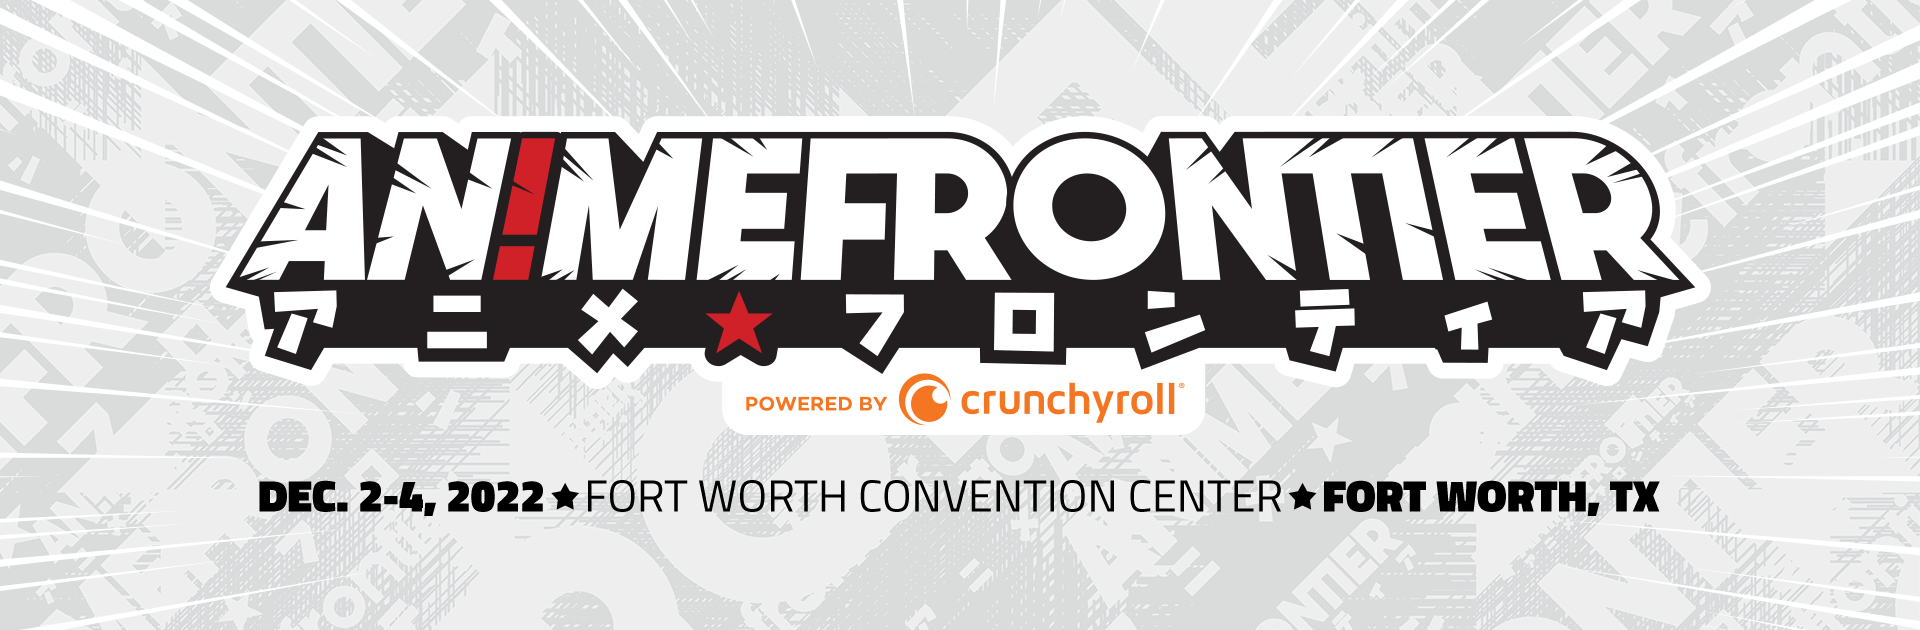 Application for Anime Frontier 2020 - Professional Registration in Fort Worth from ShowClix